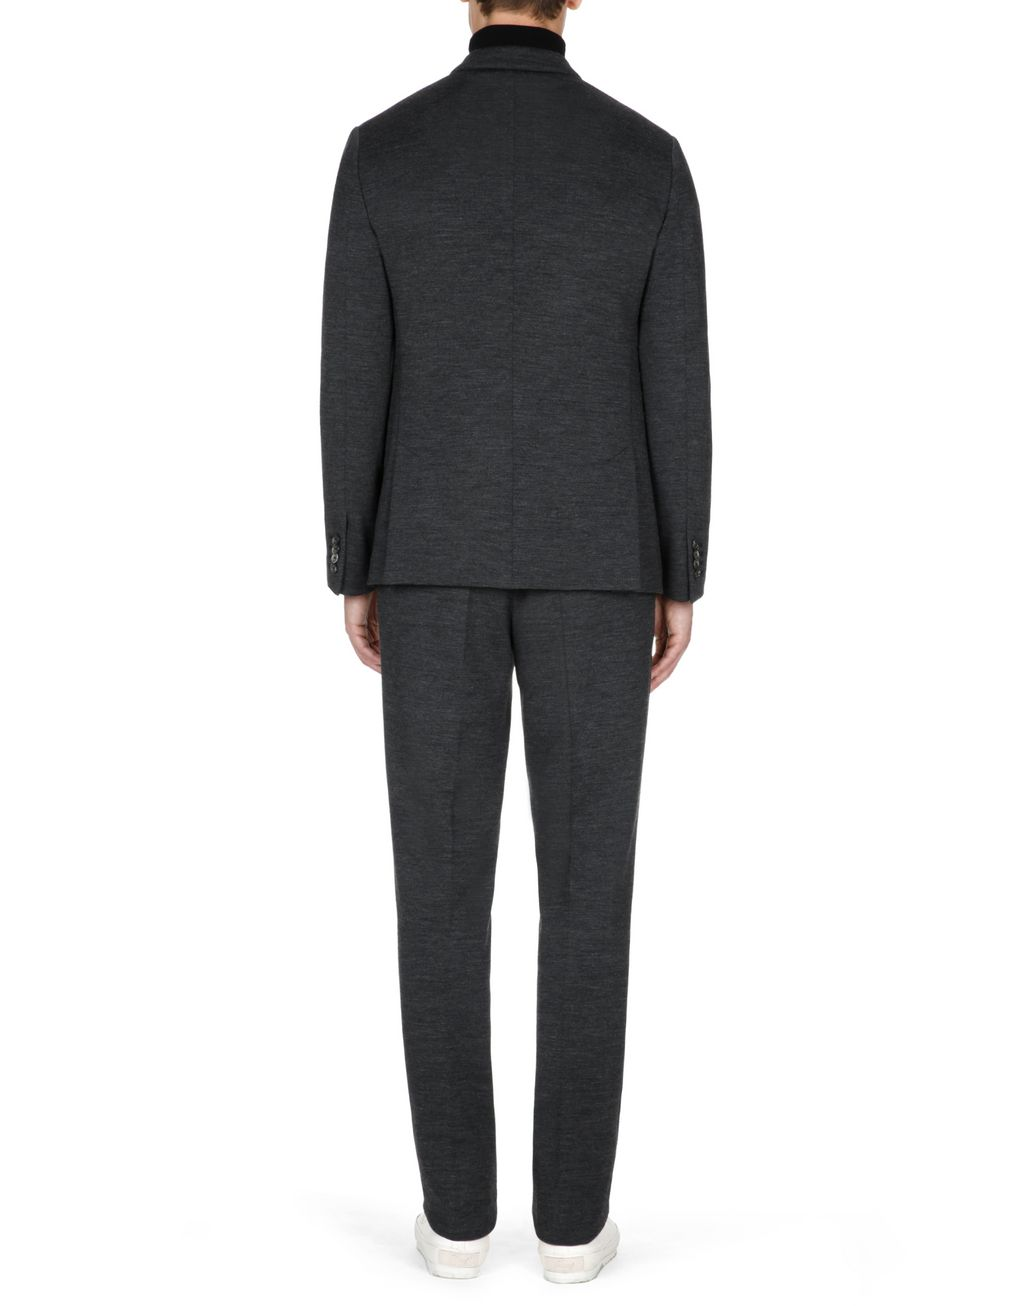 BRIONI Antrachite Grey Jersey Trousers Trousers Man e